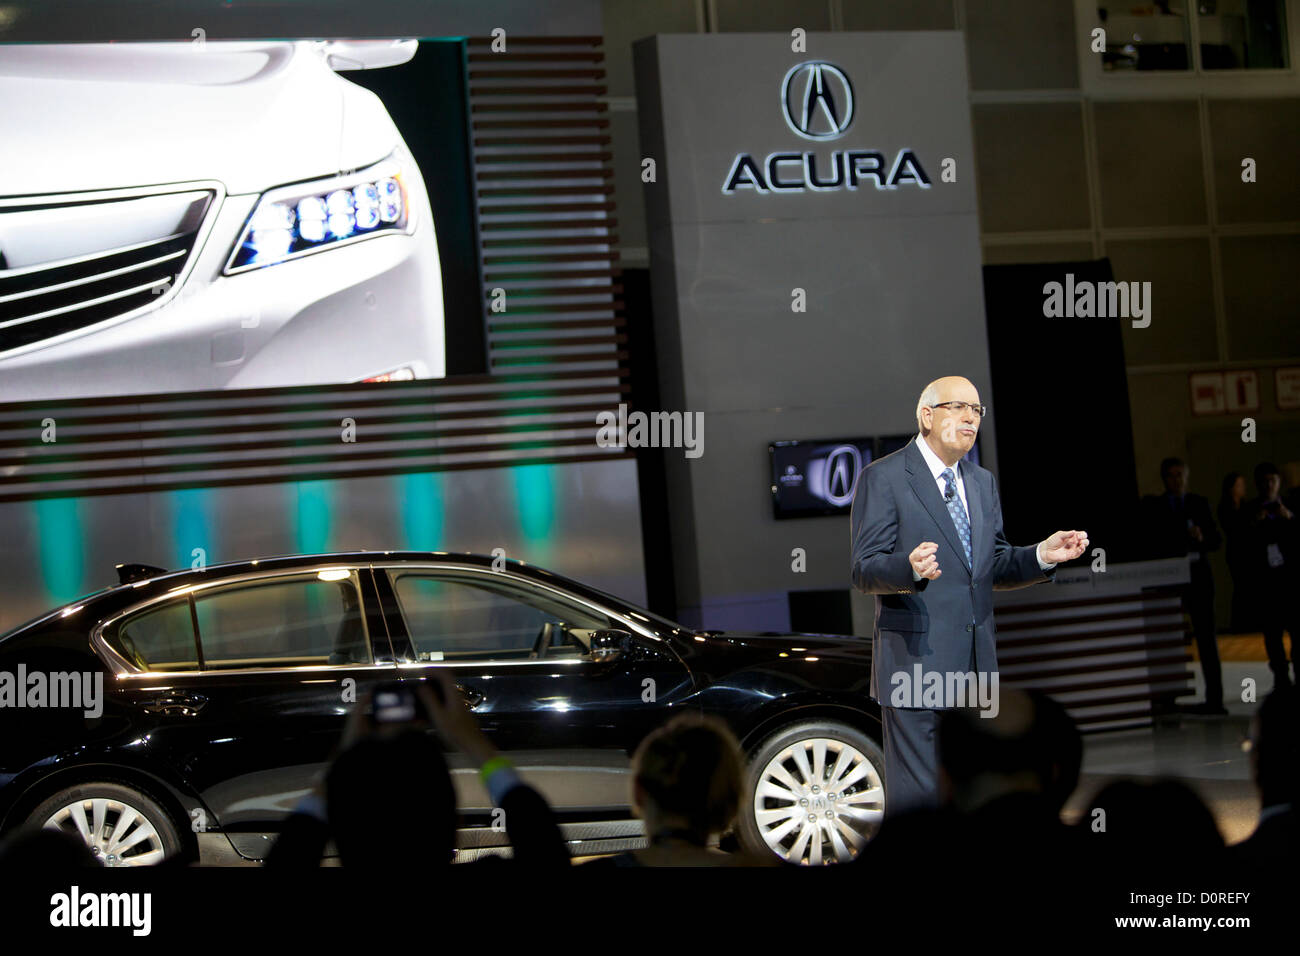 us angeles jeff los acura stock images president nov u photos conrad california photo page alamy s dealership vice general